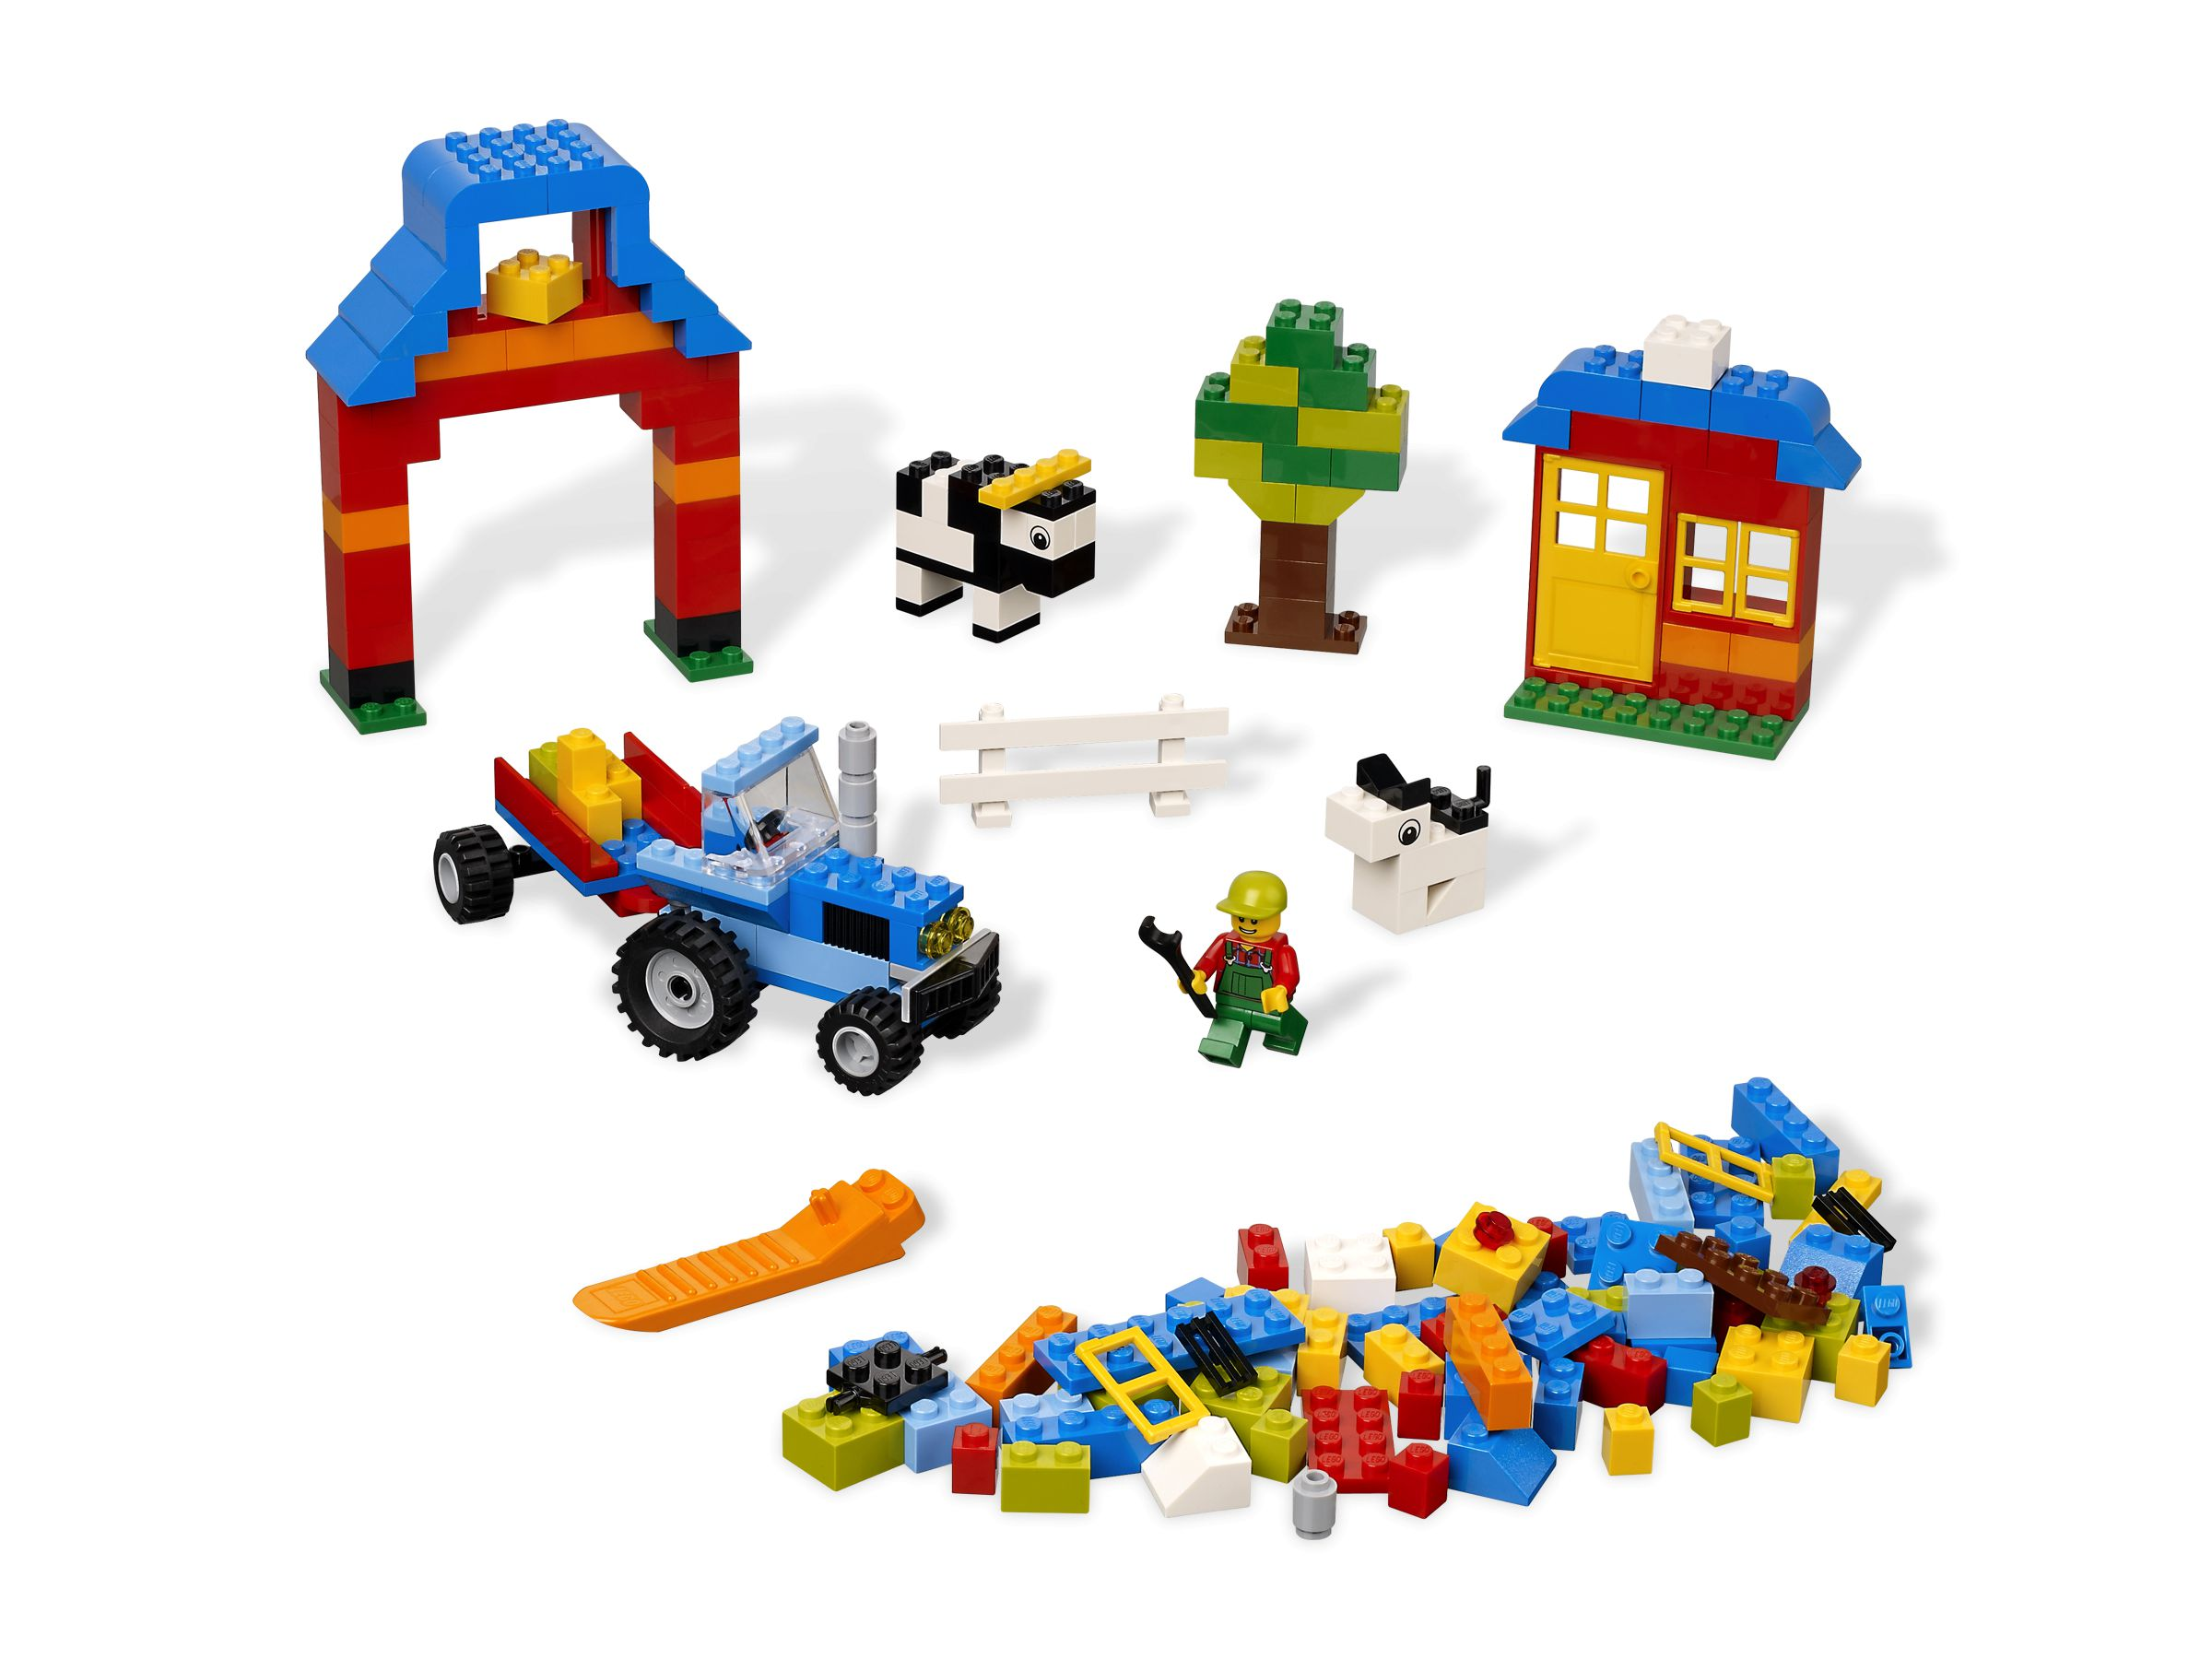 LEGO Bricks and More 4626 Steinebox LEGO_4626.jpg